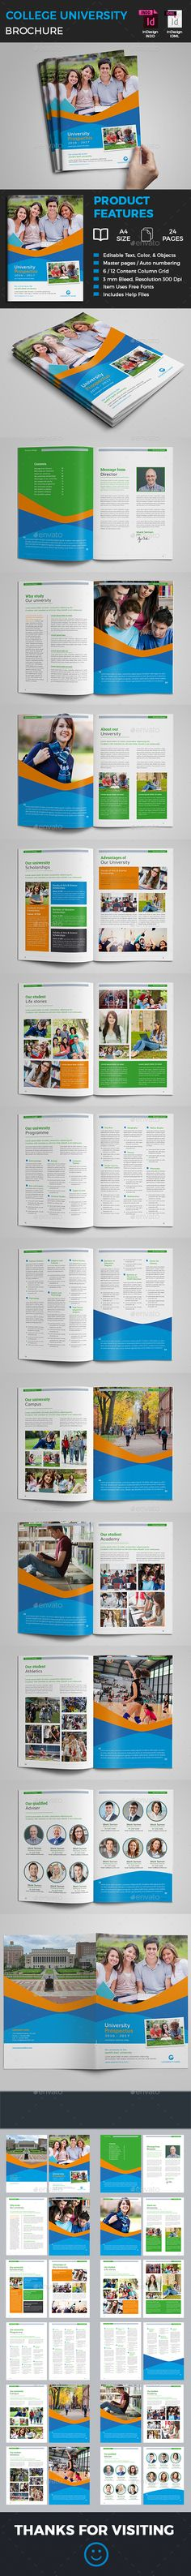 Multipurpose Portfolio - 36 Pages INDD   IDML   PSD - university brochure template